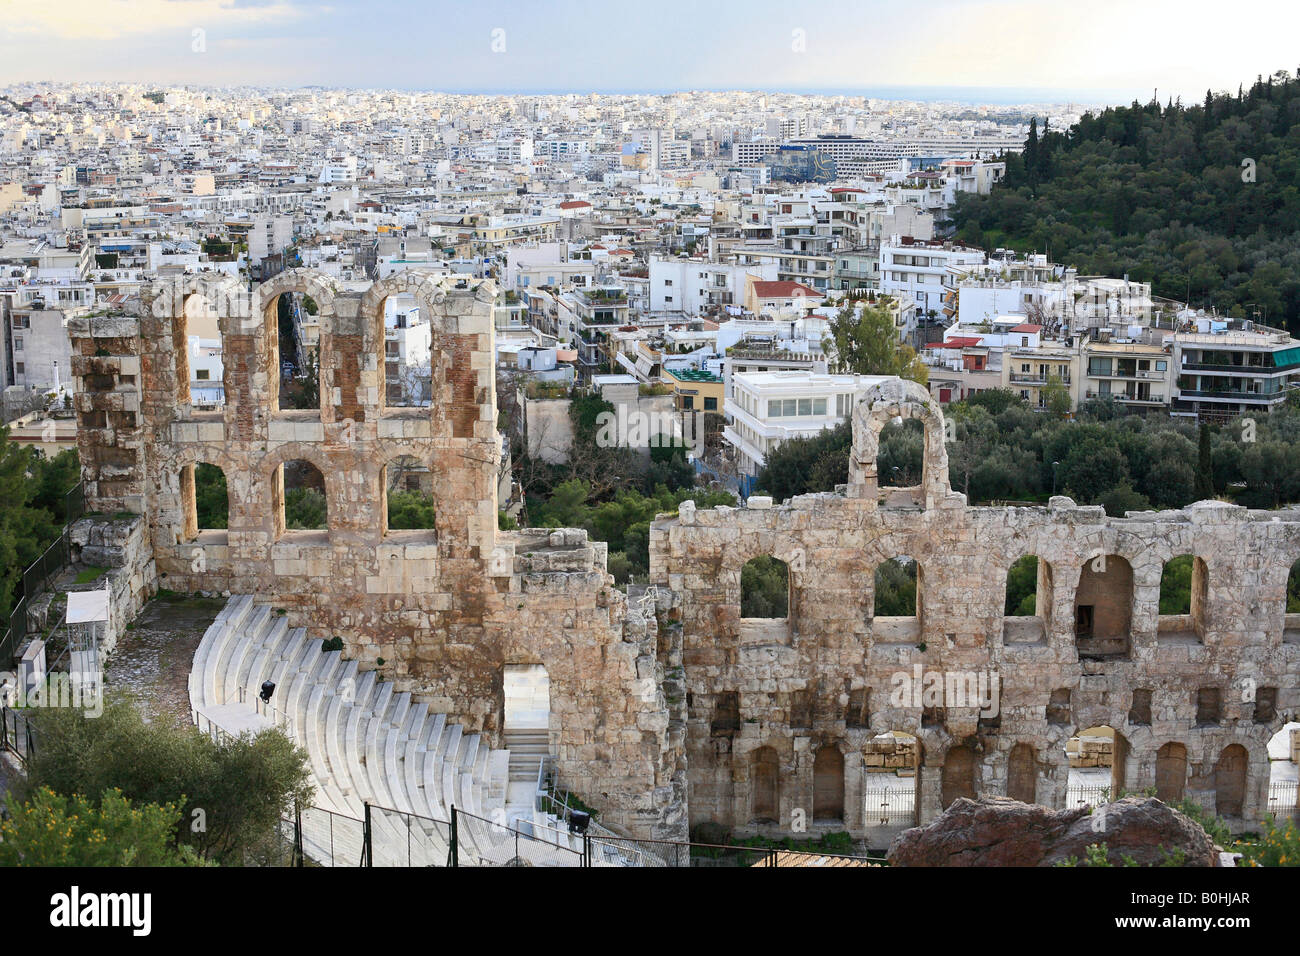 Odeon of Herodes Atticus, ancient ruins of the Acropolis overlooking sprawling city of Athens, Greece - Stock Image